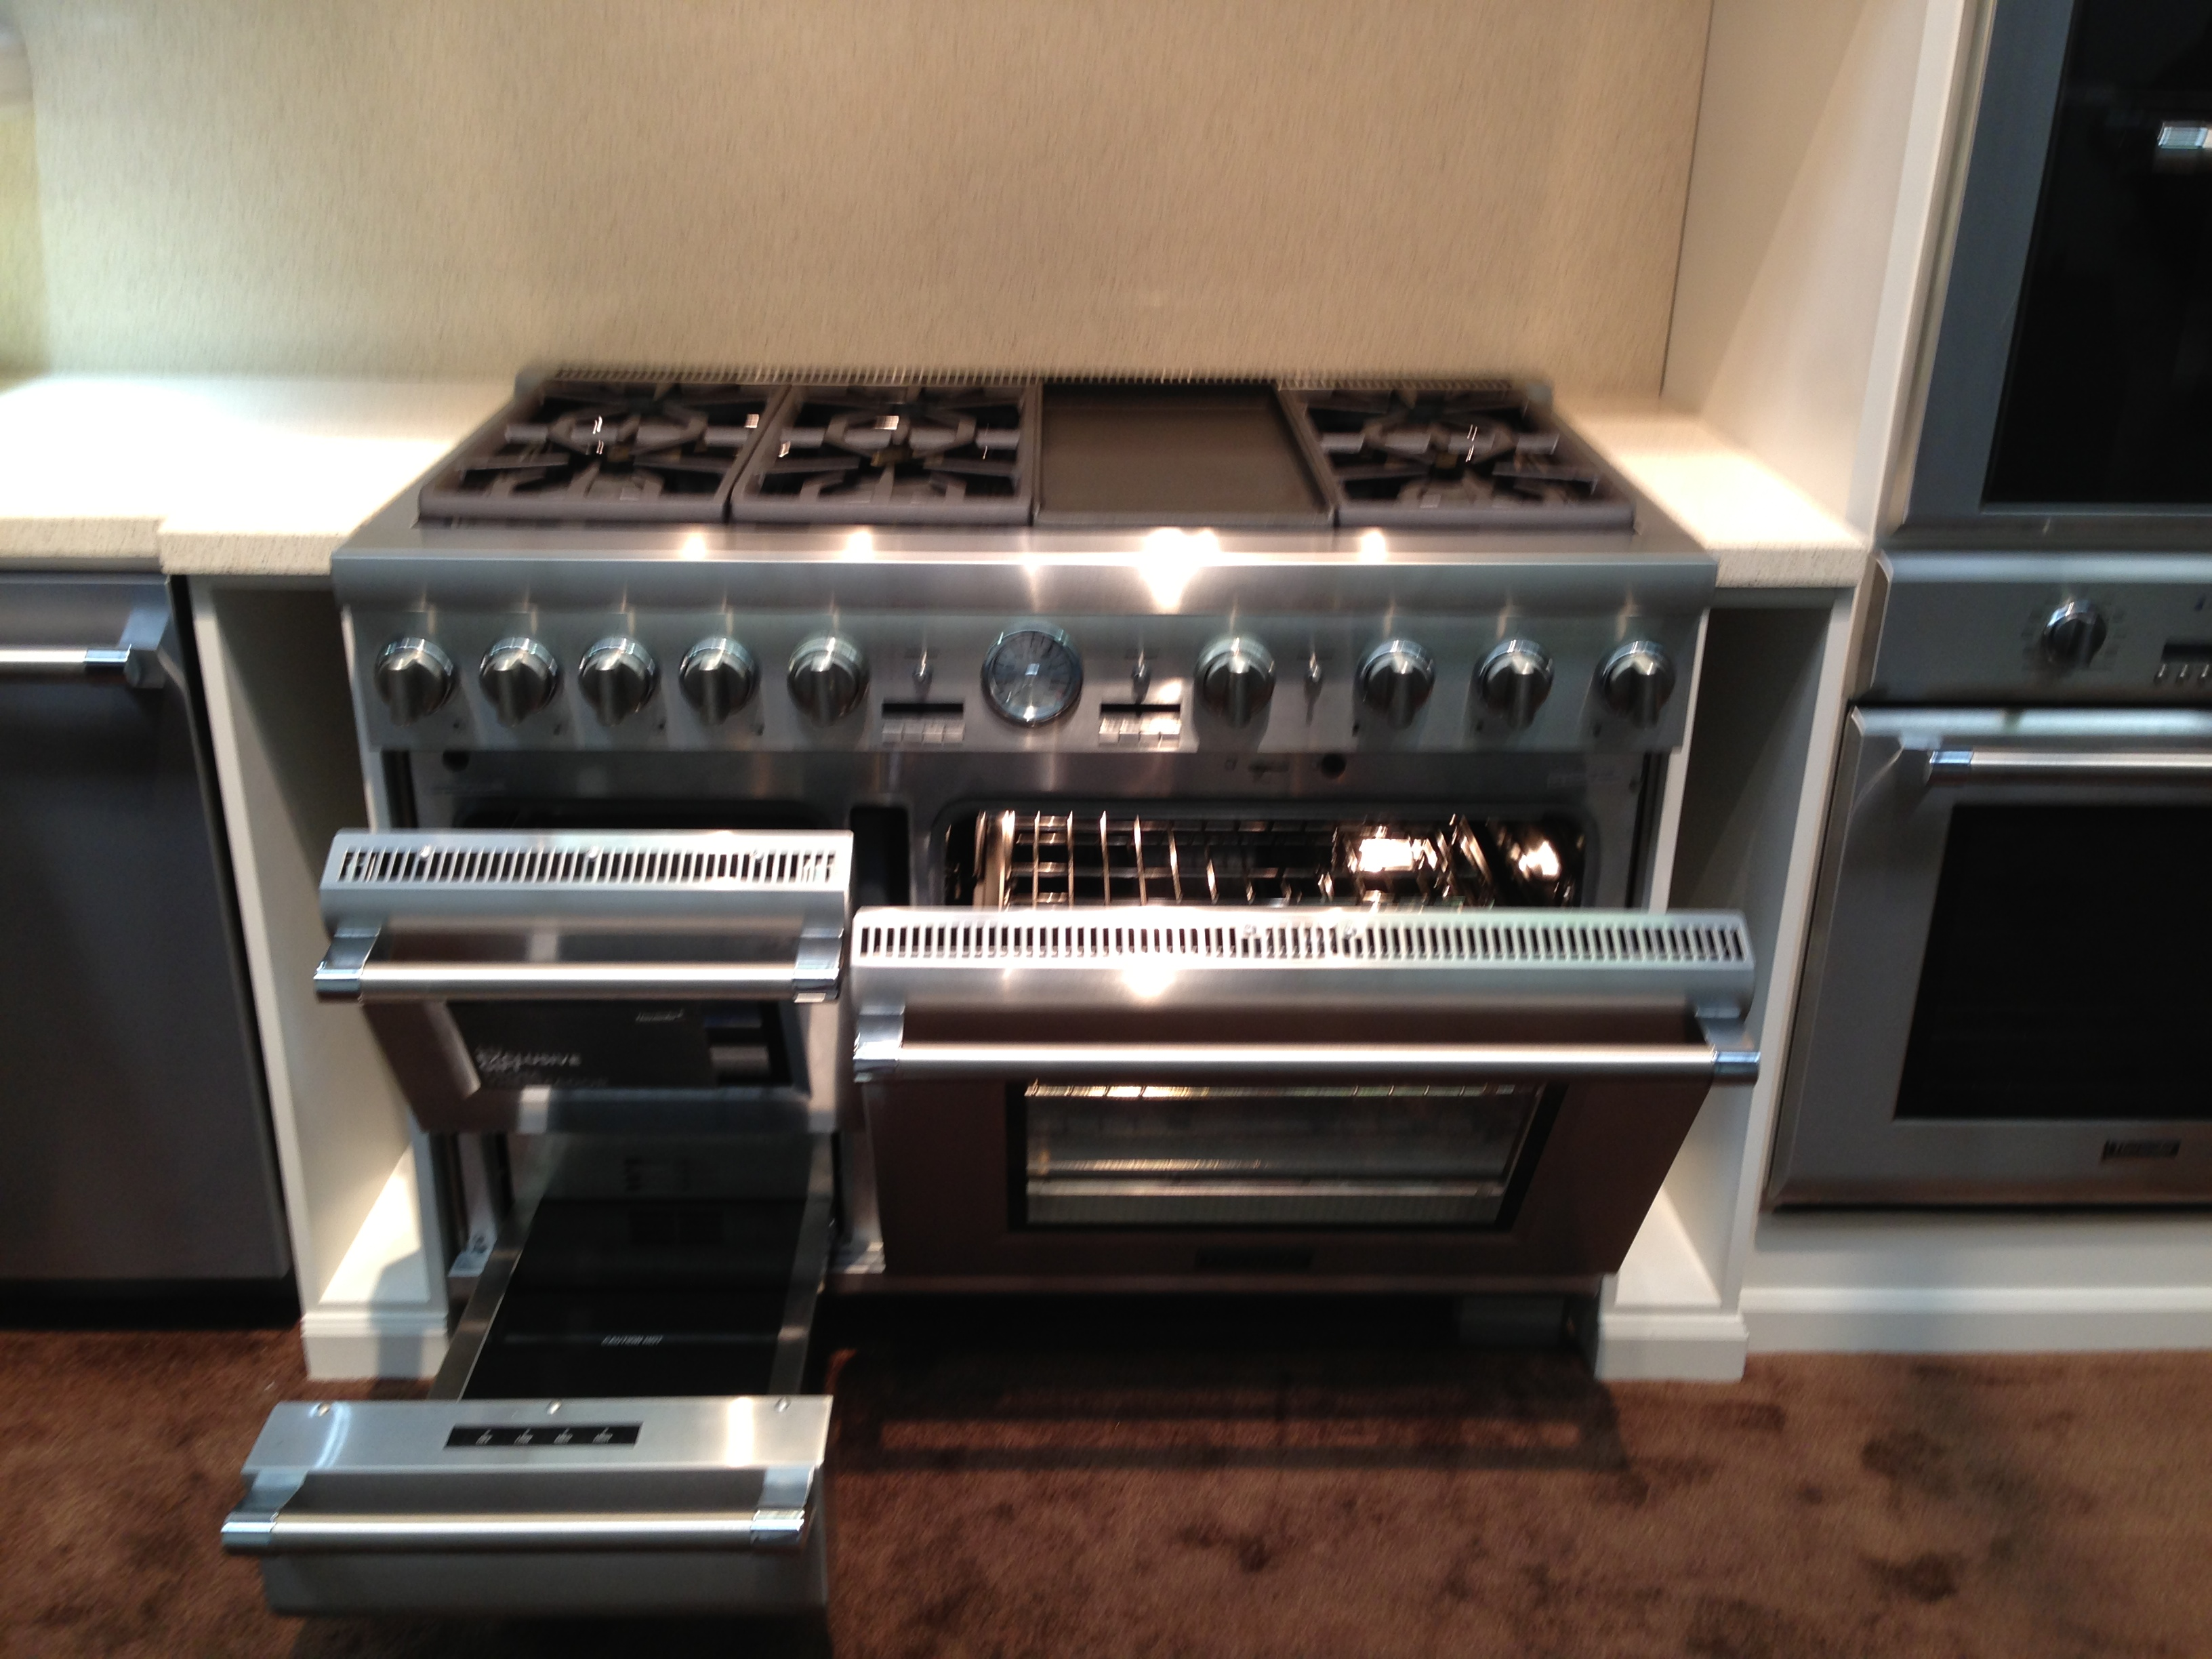 steam oven warming drawer convection oven griddle and six burners the